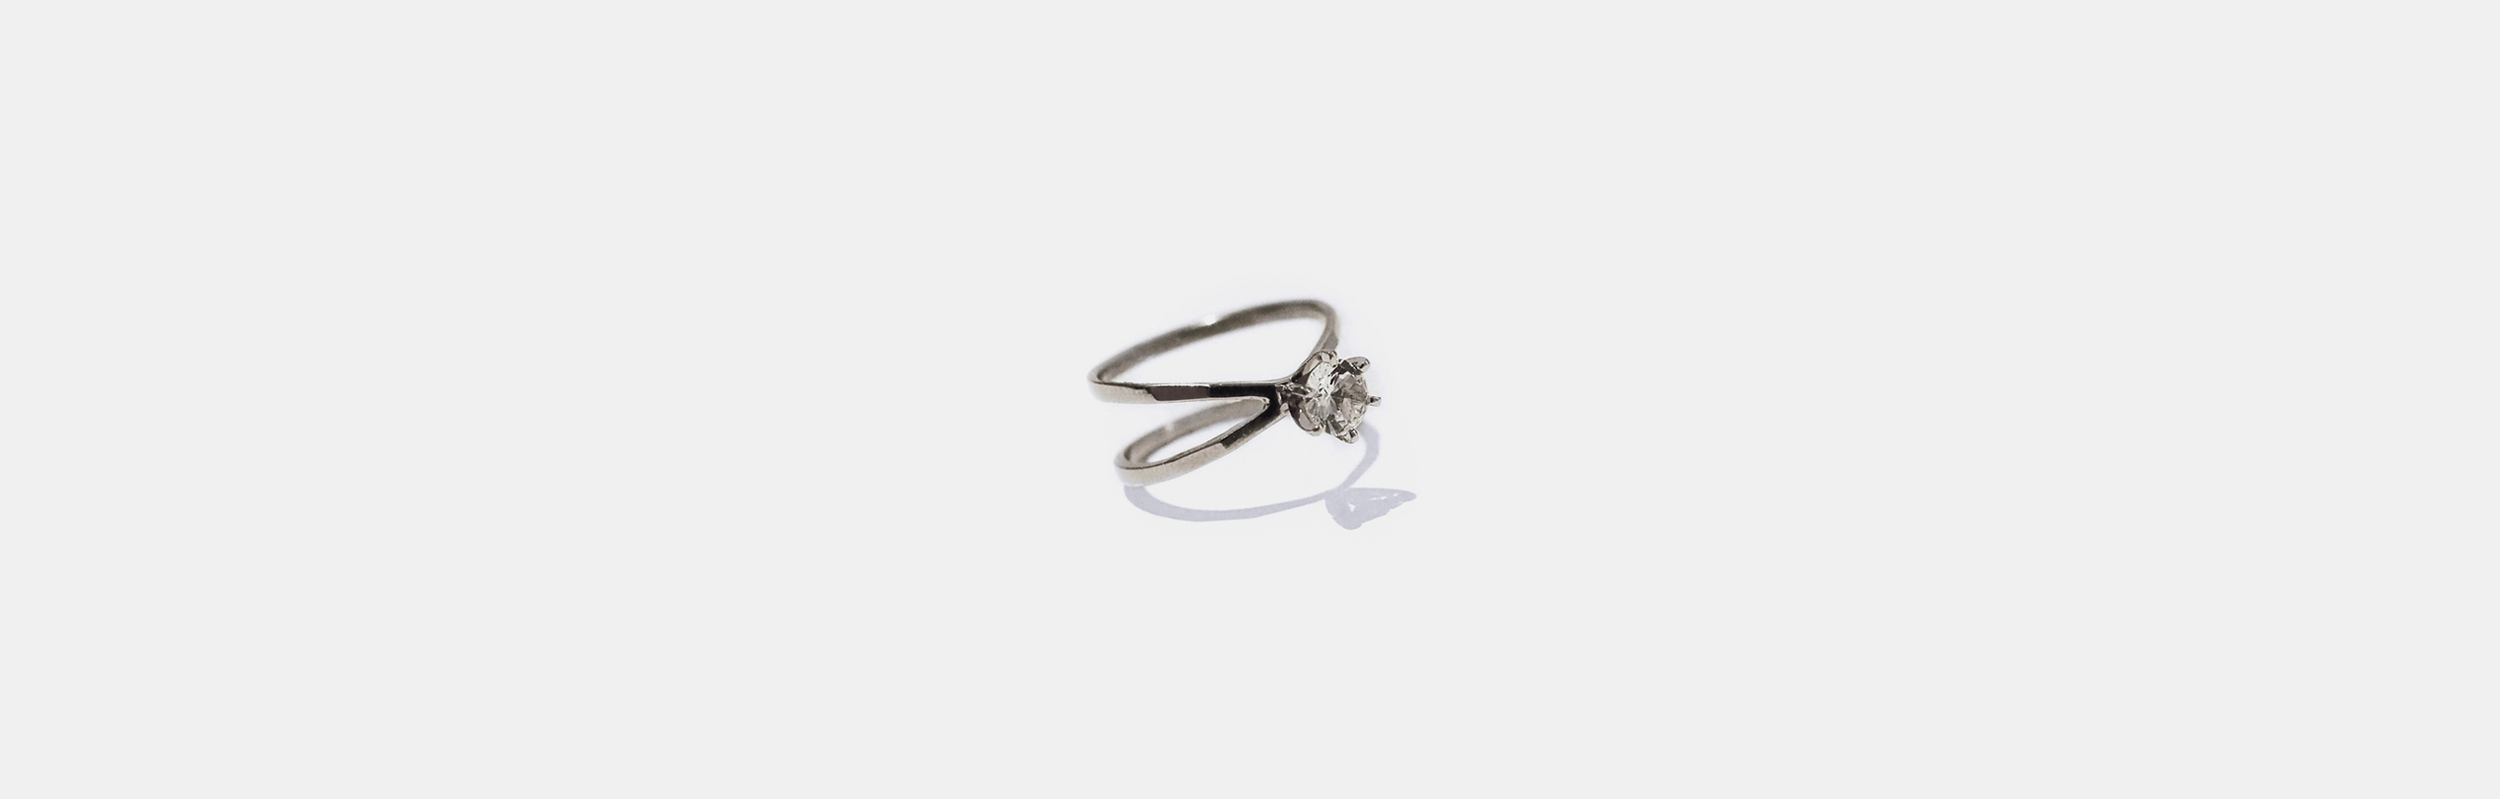 Custom-Engagement-Rings-Created-in-the-Hudson-Valley